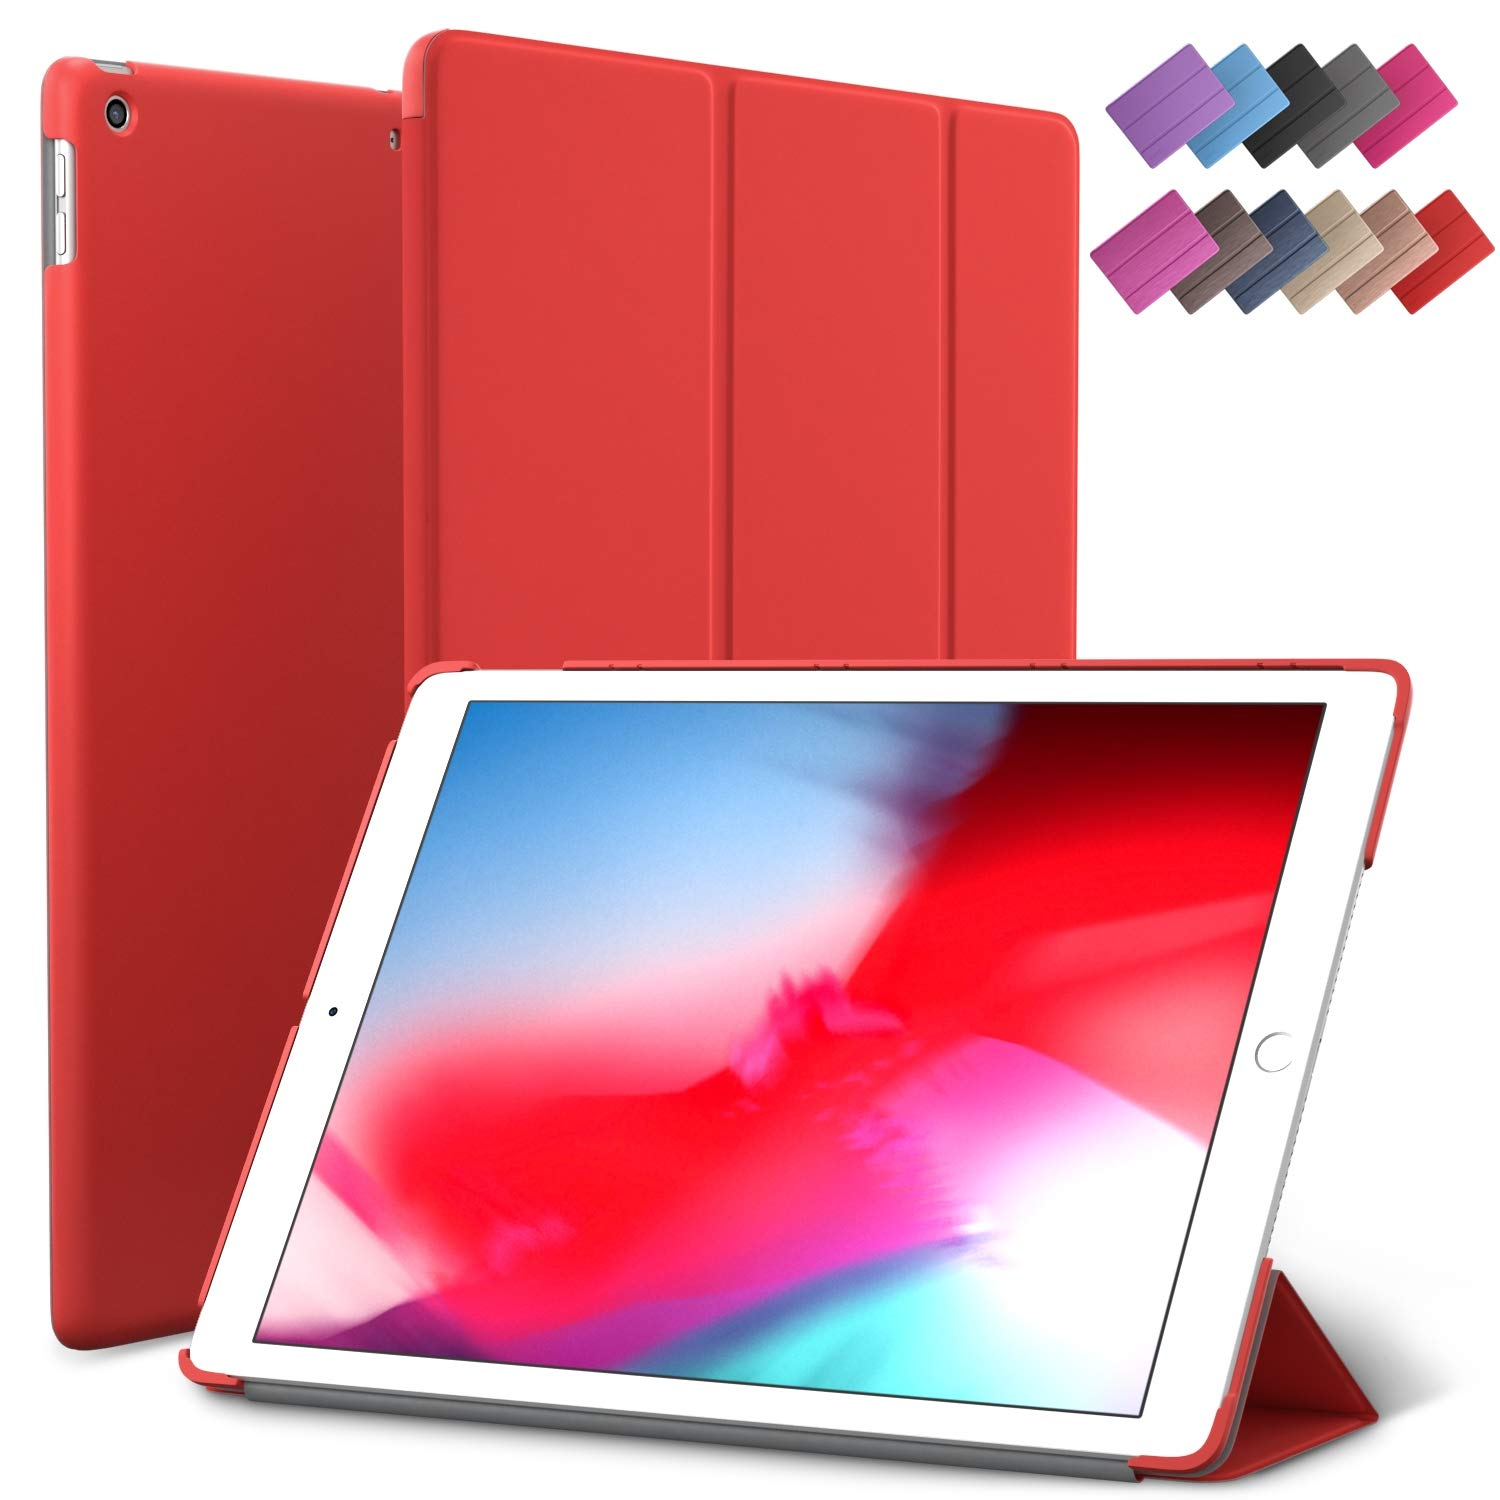 iPad Mini 5 case, ROARTZ Red Slim Fit Smart Rubber Coated Folio Case Hard Cover Light-Weight Wake/Sleep for Apple iPad Mini 5th Generation 2019 Model A2133 A2124 A2126 7.9-inch Dis